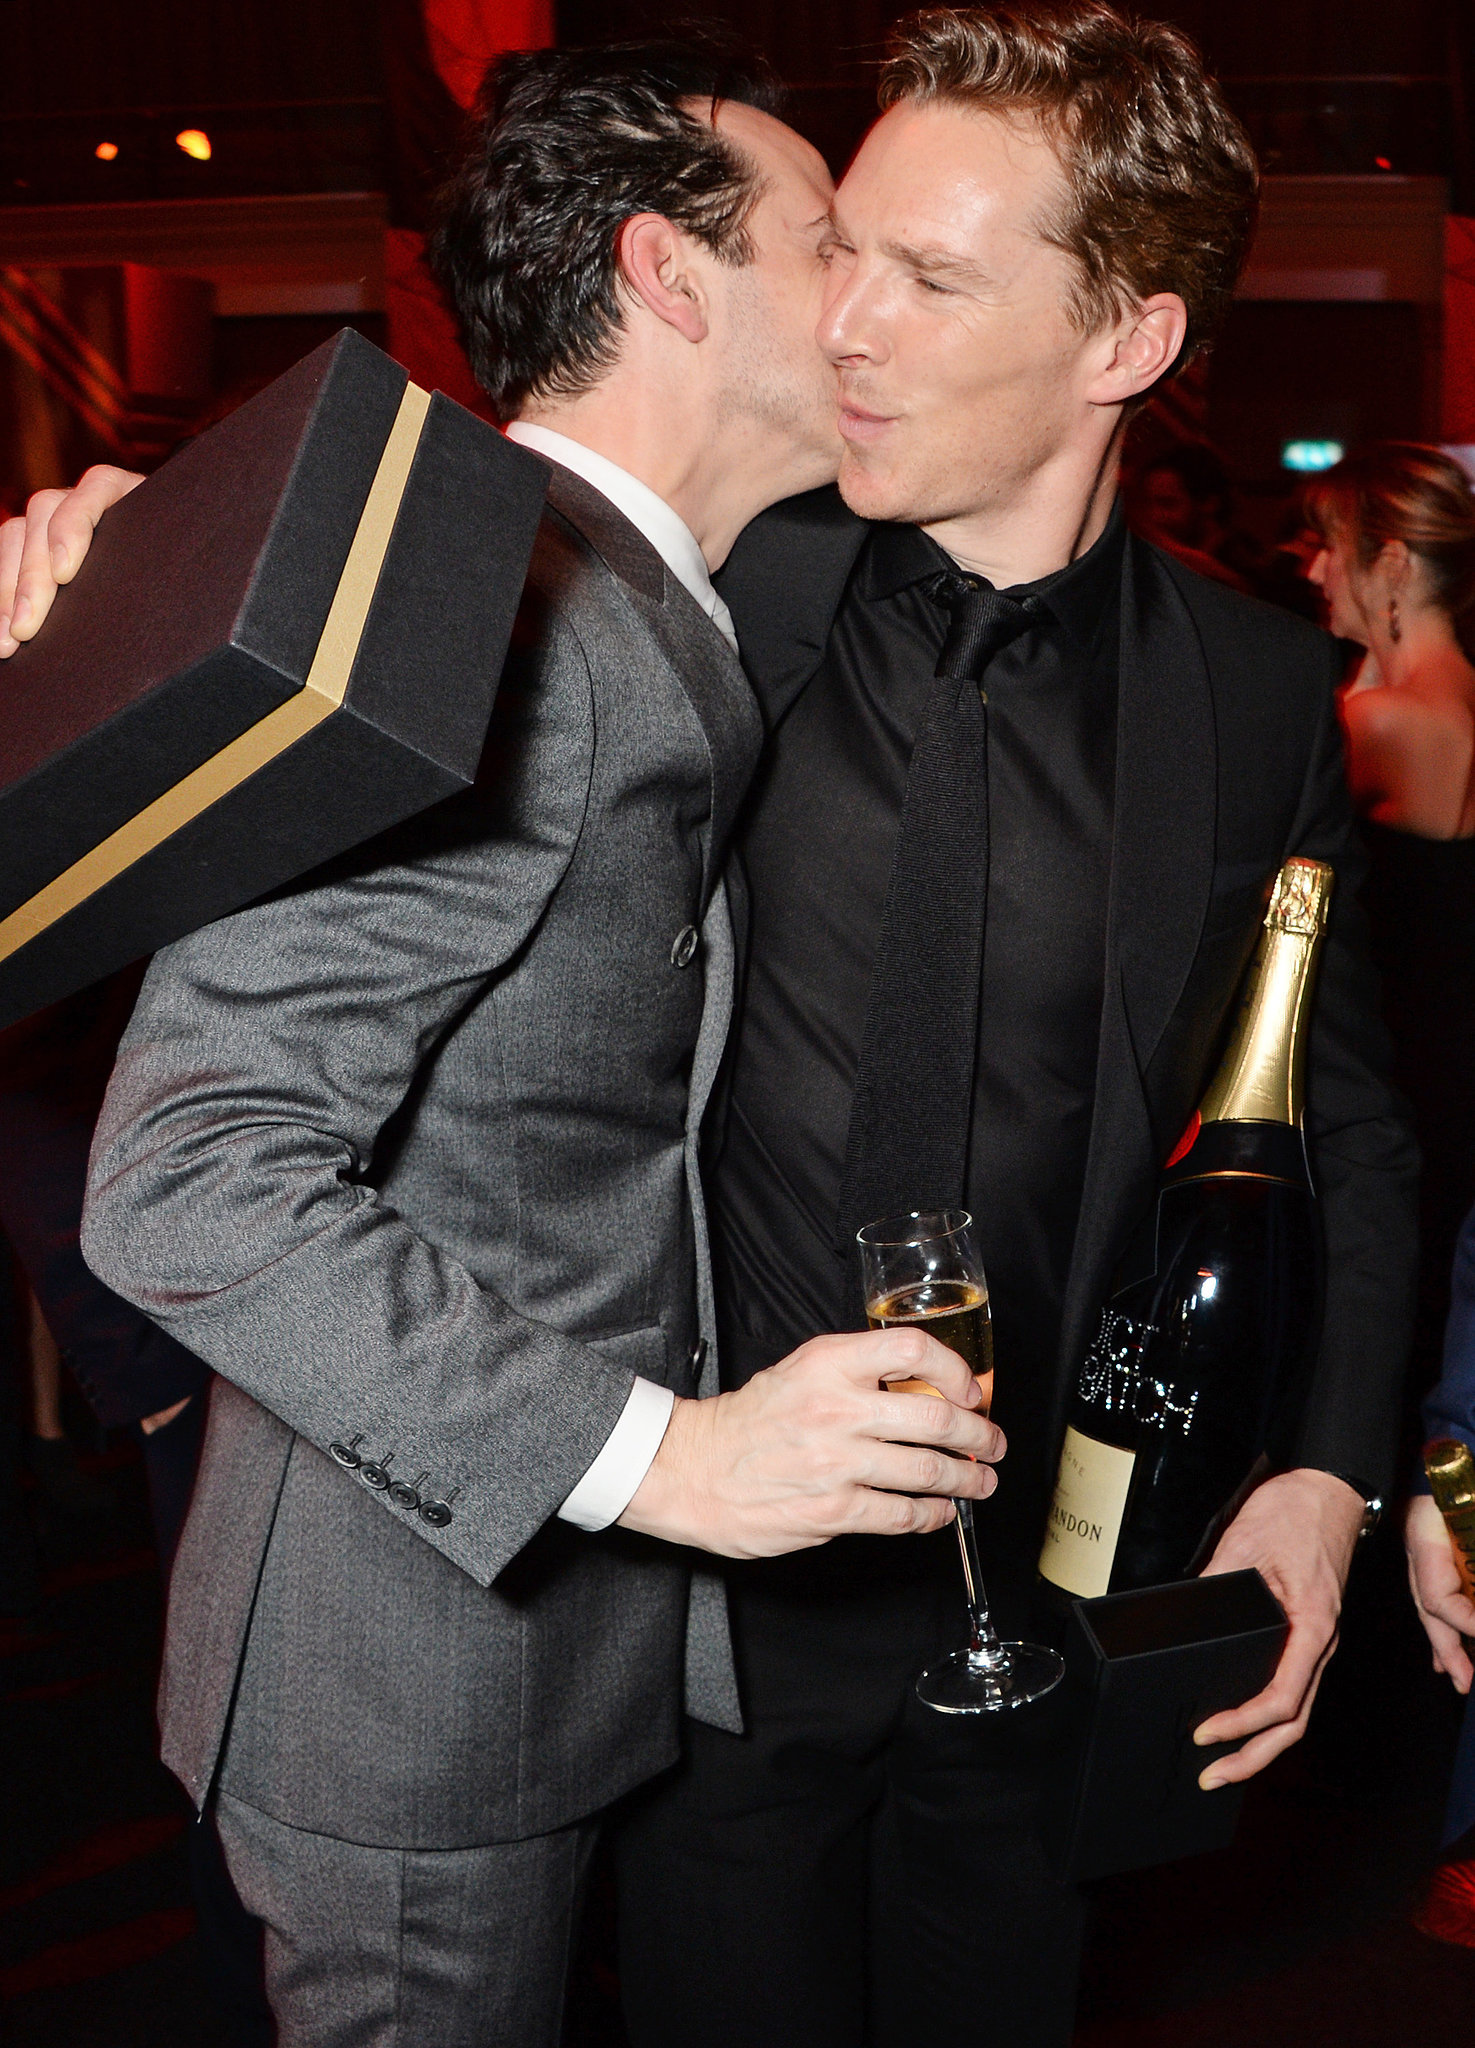 """️ Have they all been in a """"flirty mood"""" during the party ...  